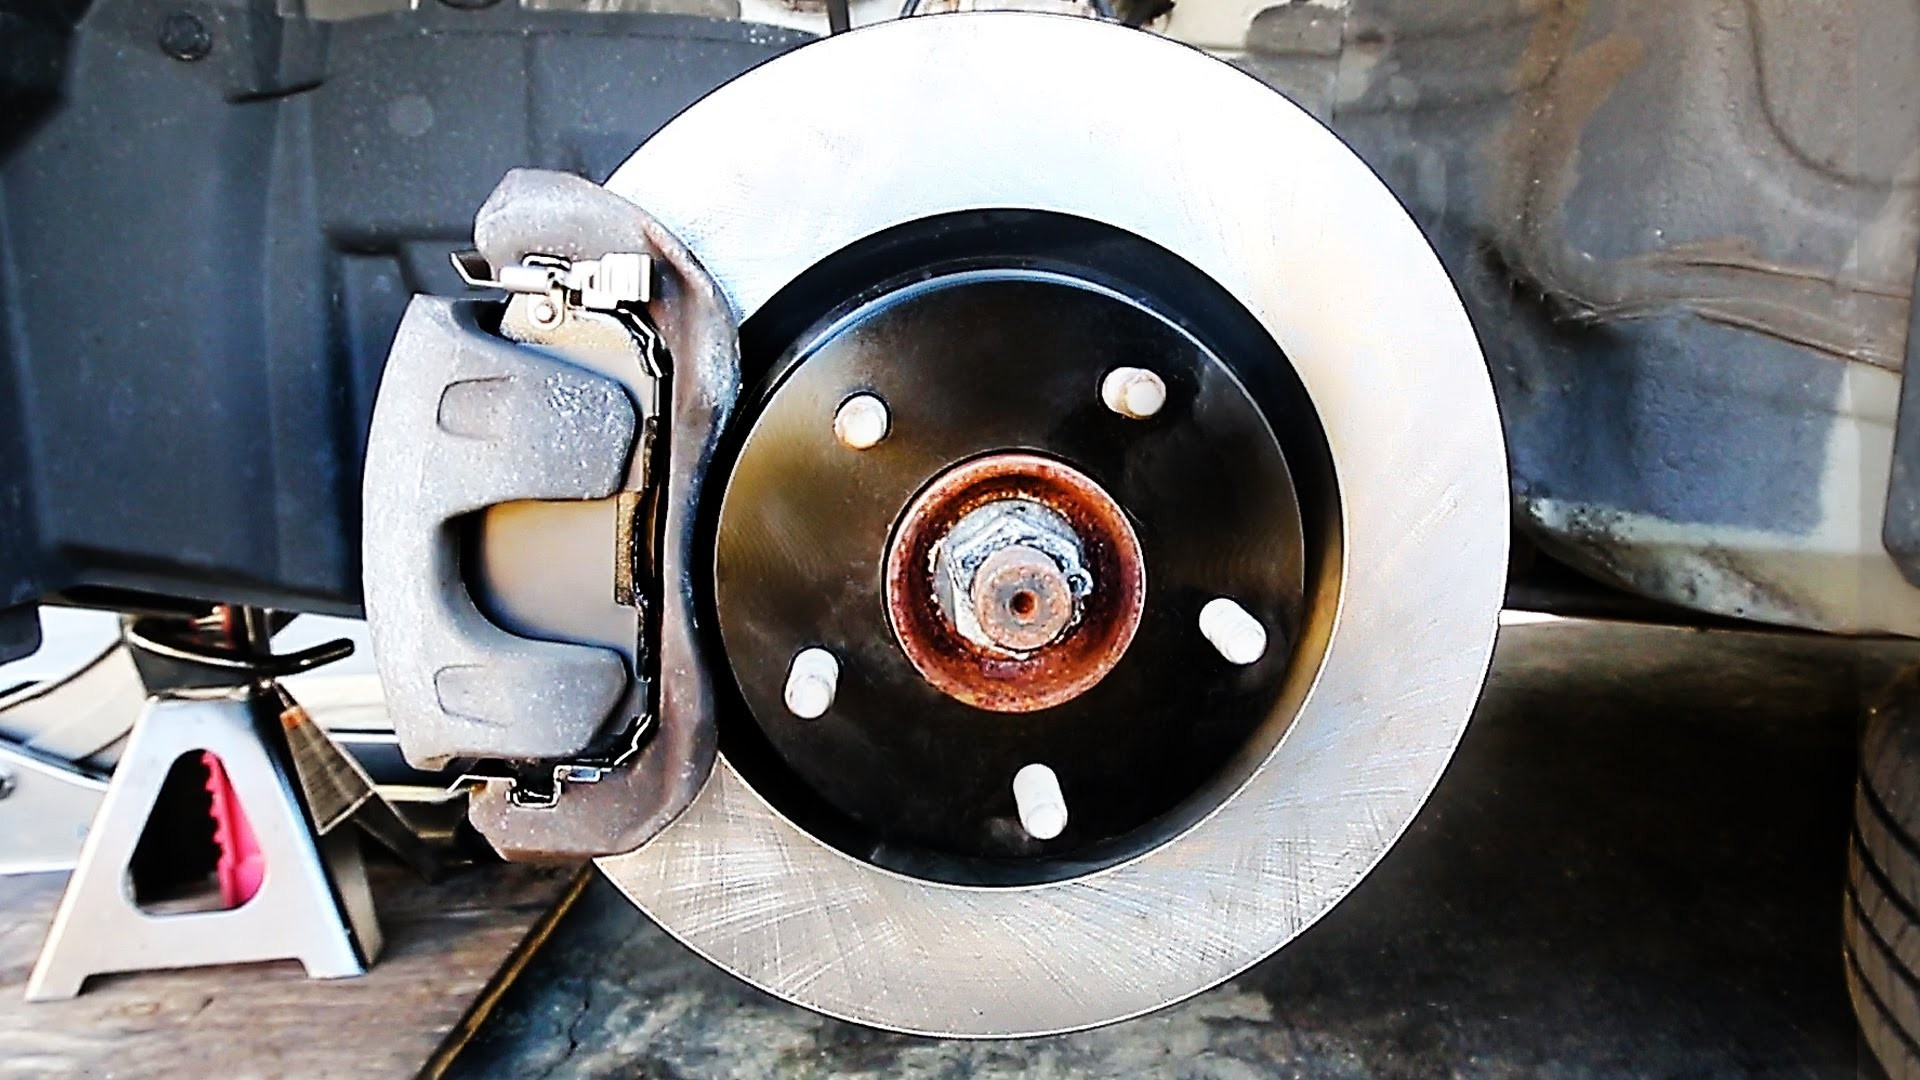 Diagram for Rear Drum Brakes Rear Drum Brake Parts Diagram How to Change Front and Rear Brake Of Diagram for Rear Drum Brakes